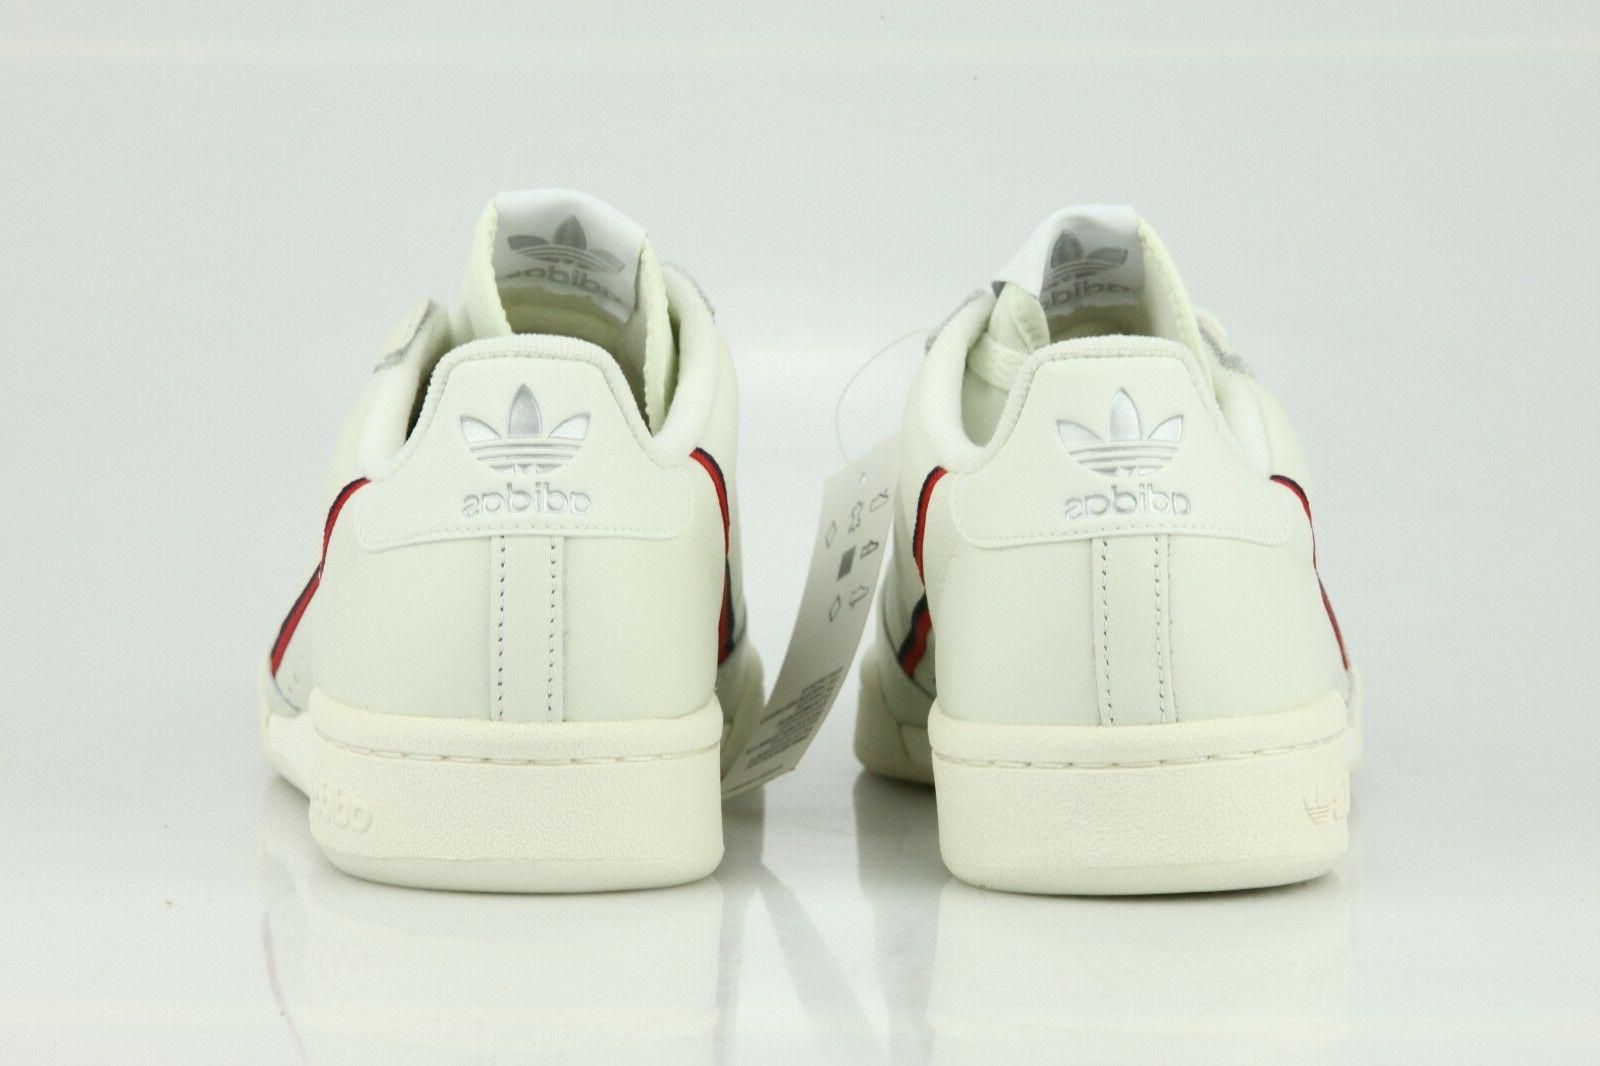 Adidas Rascal White Sneakers Shoes B41680 NEW